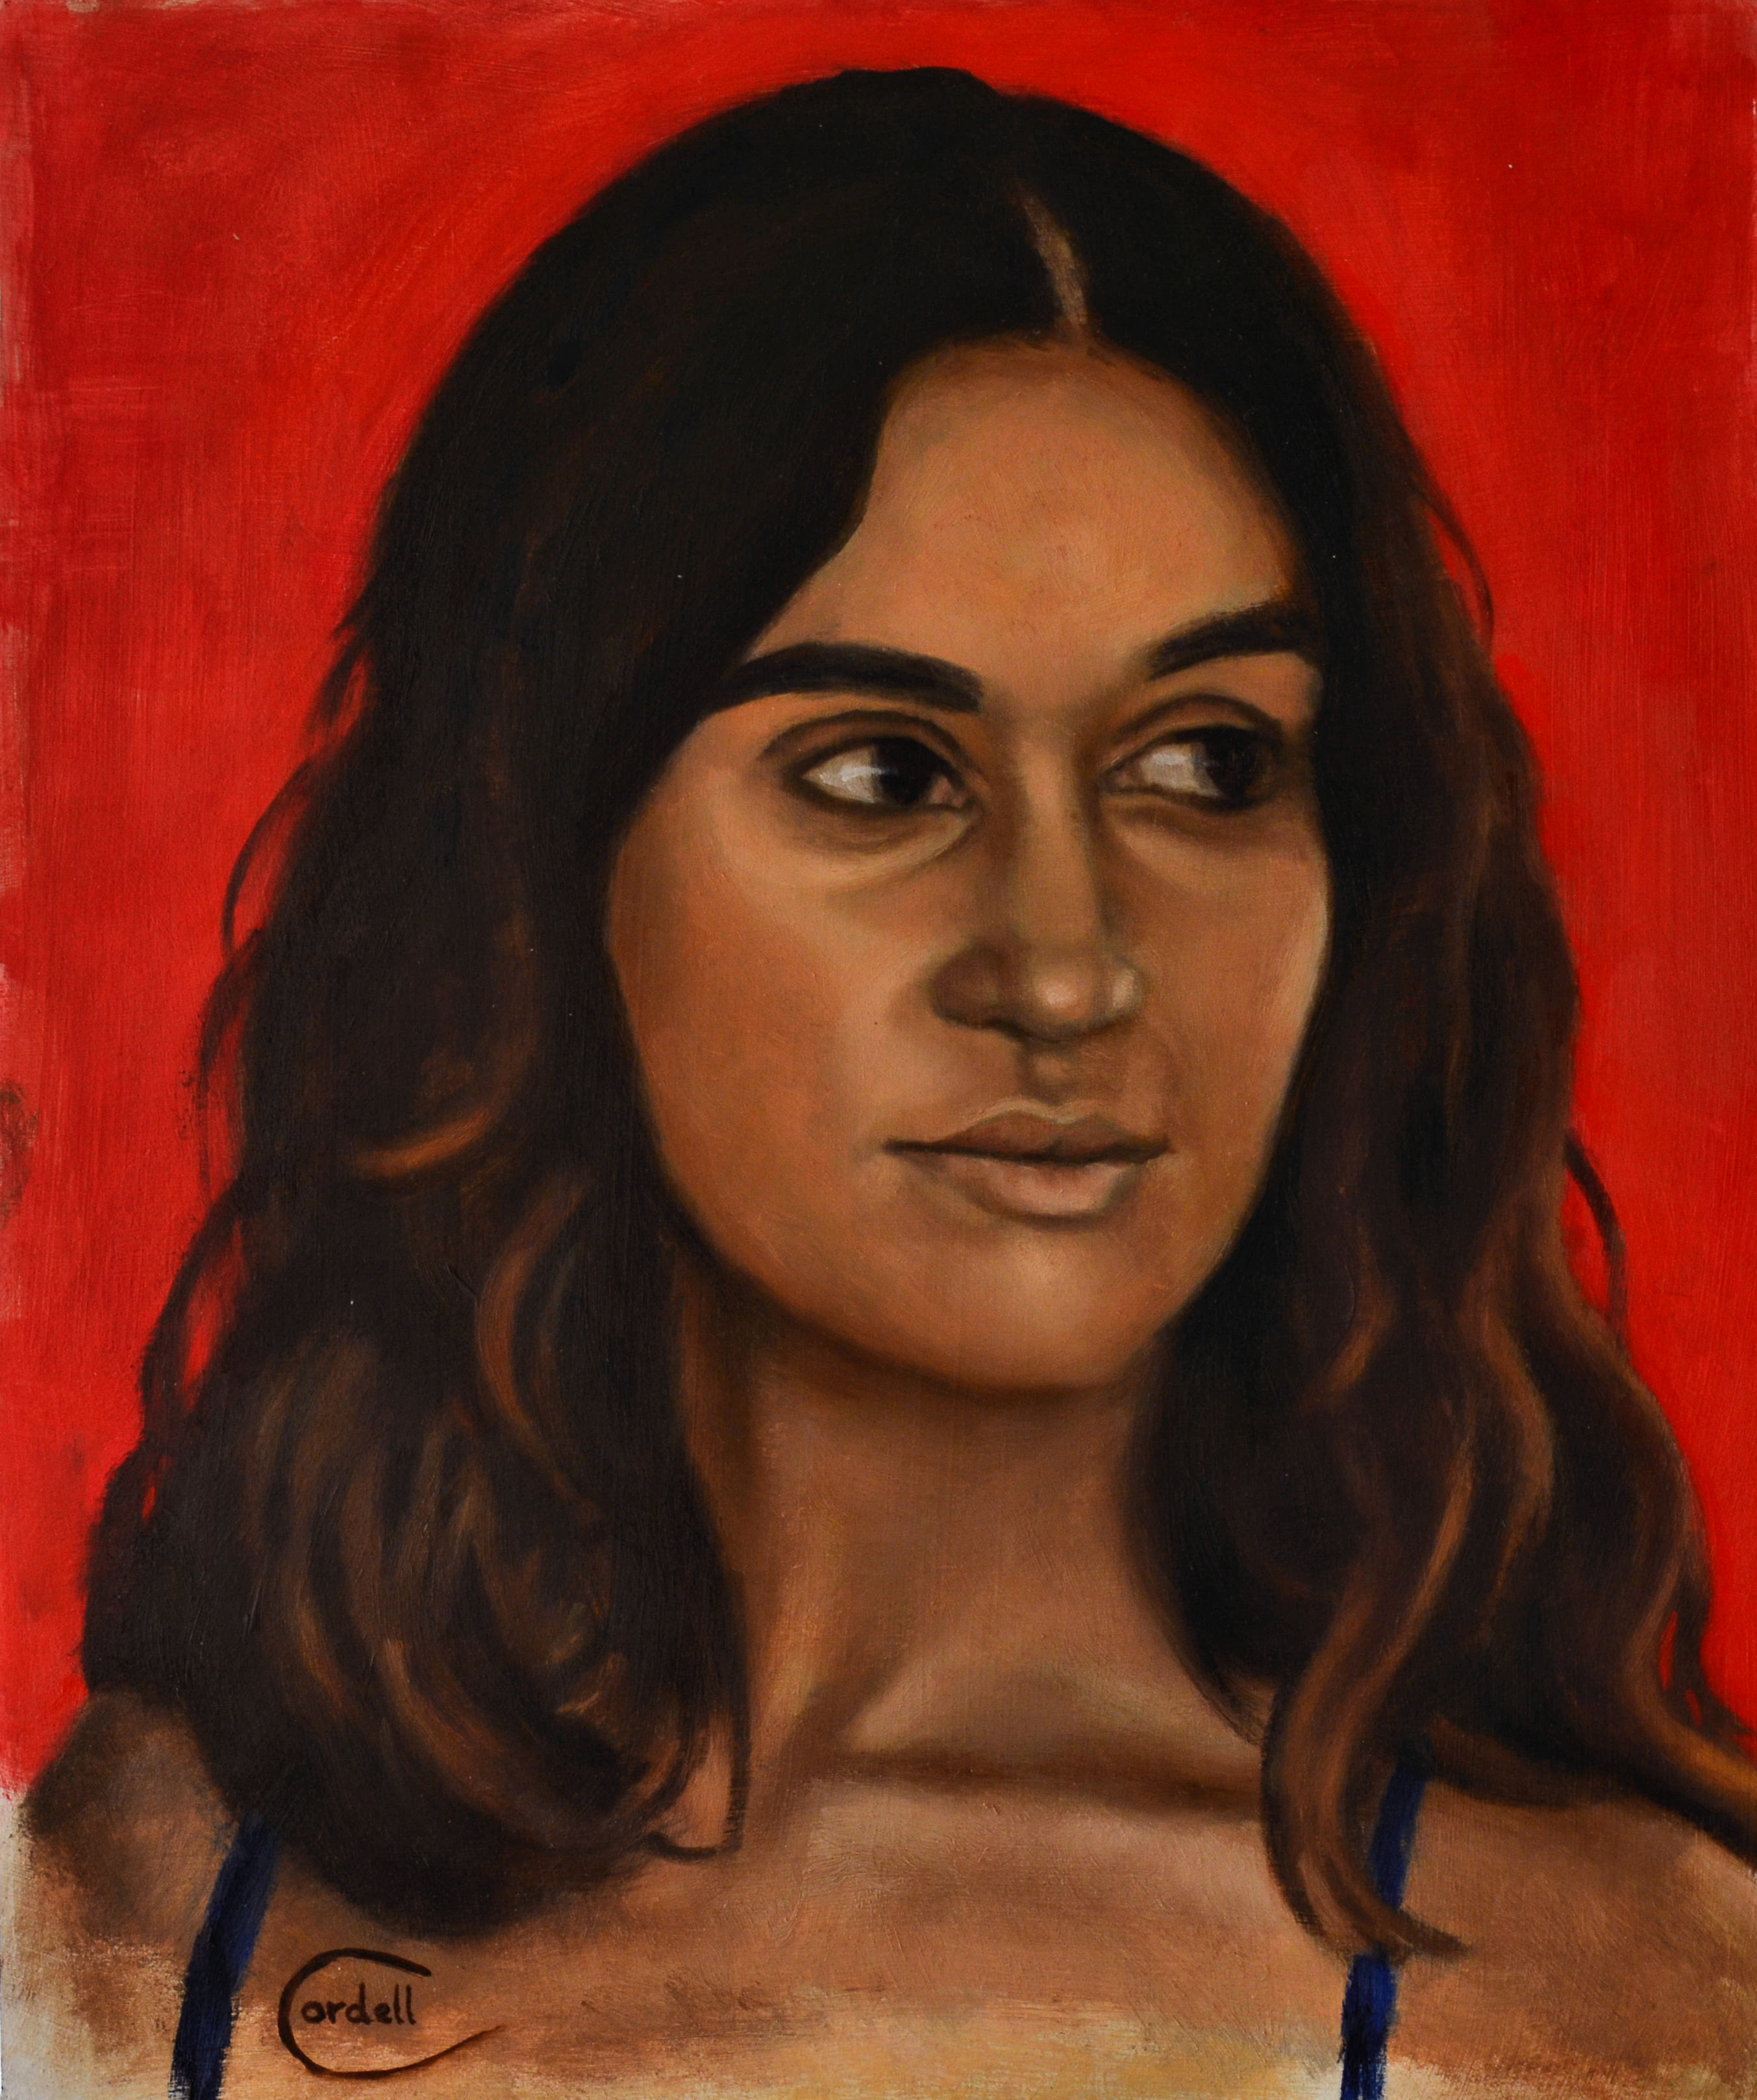 Oil painting portrait of Sabrina.